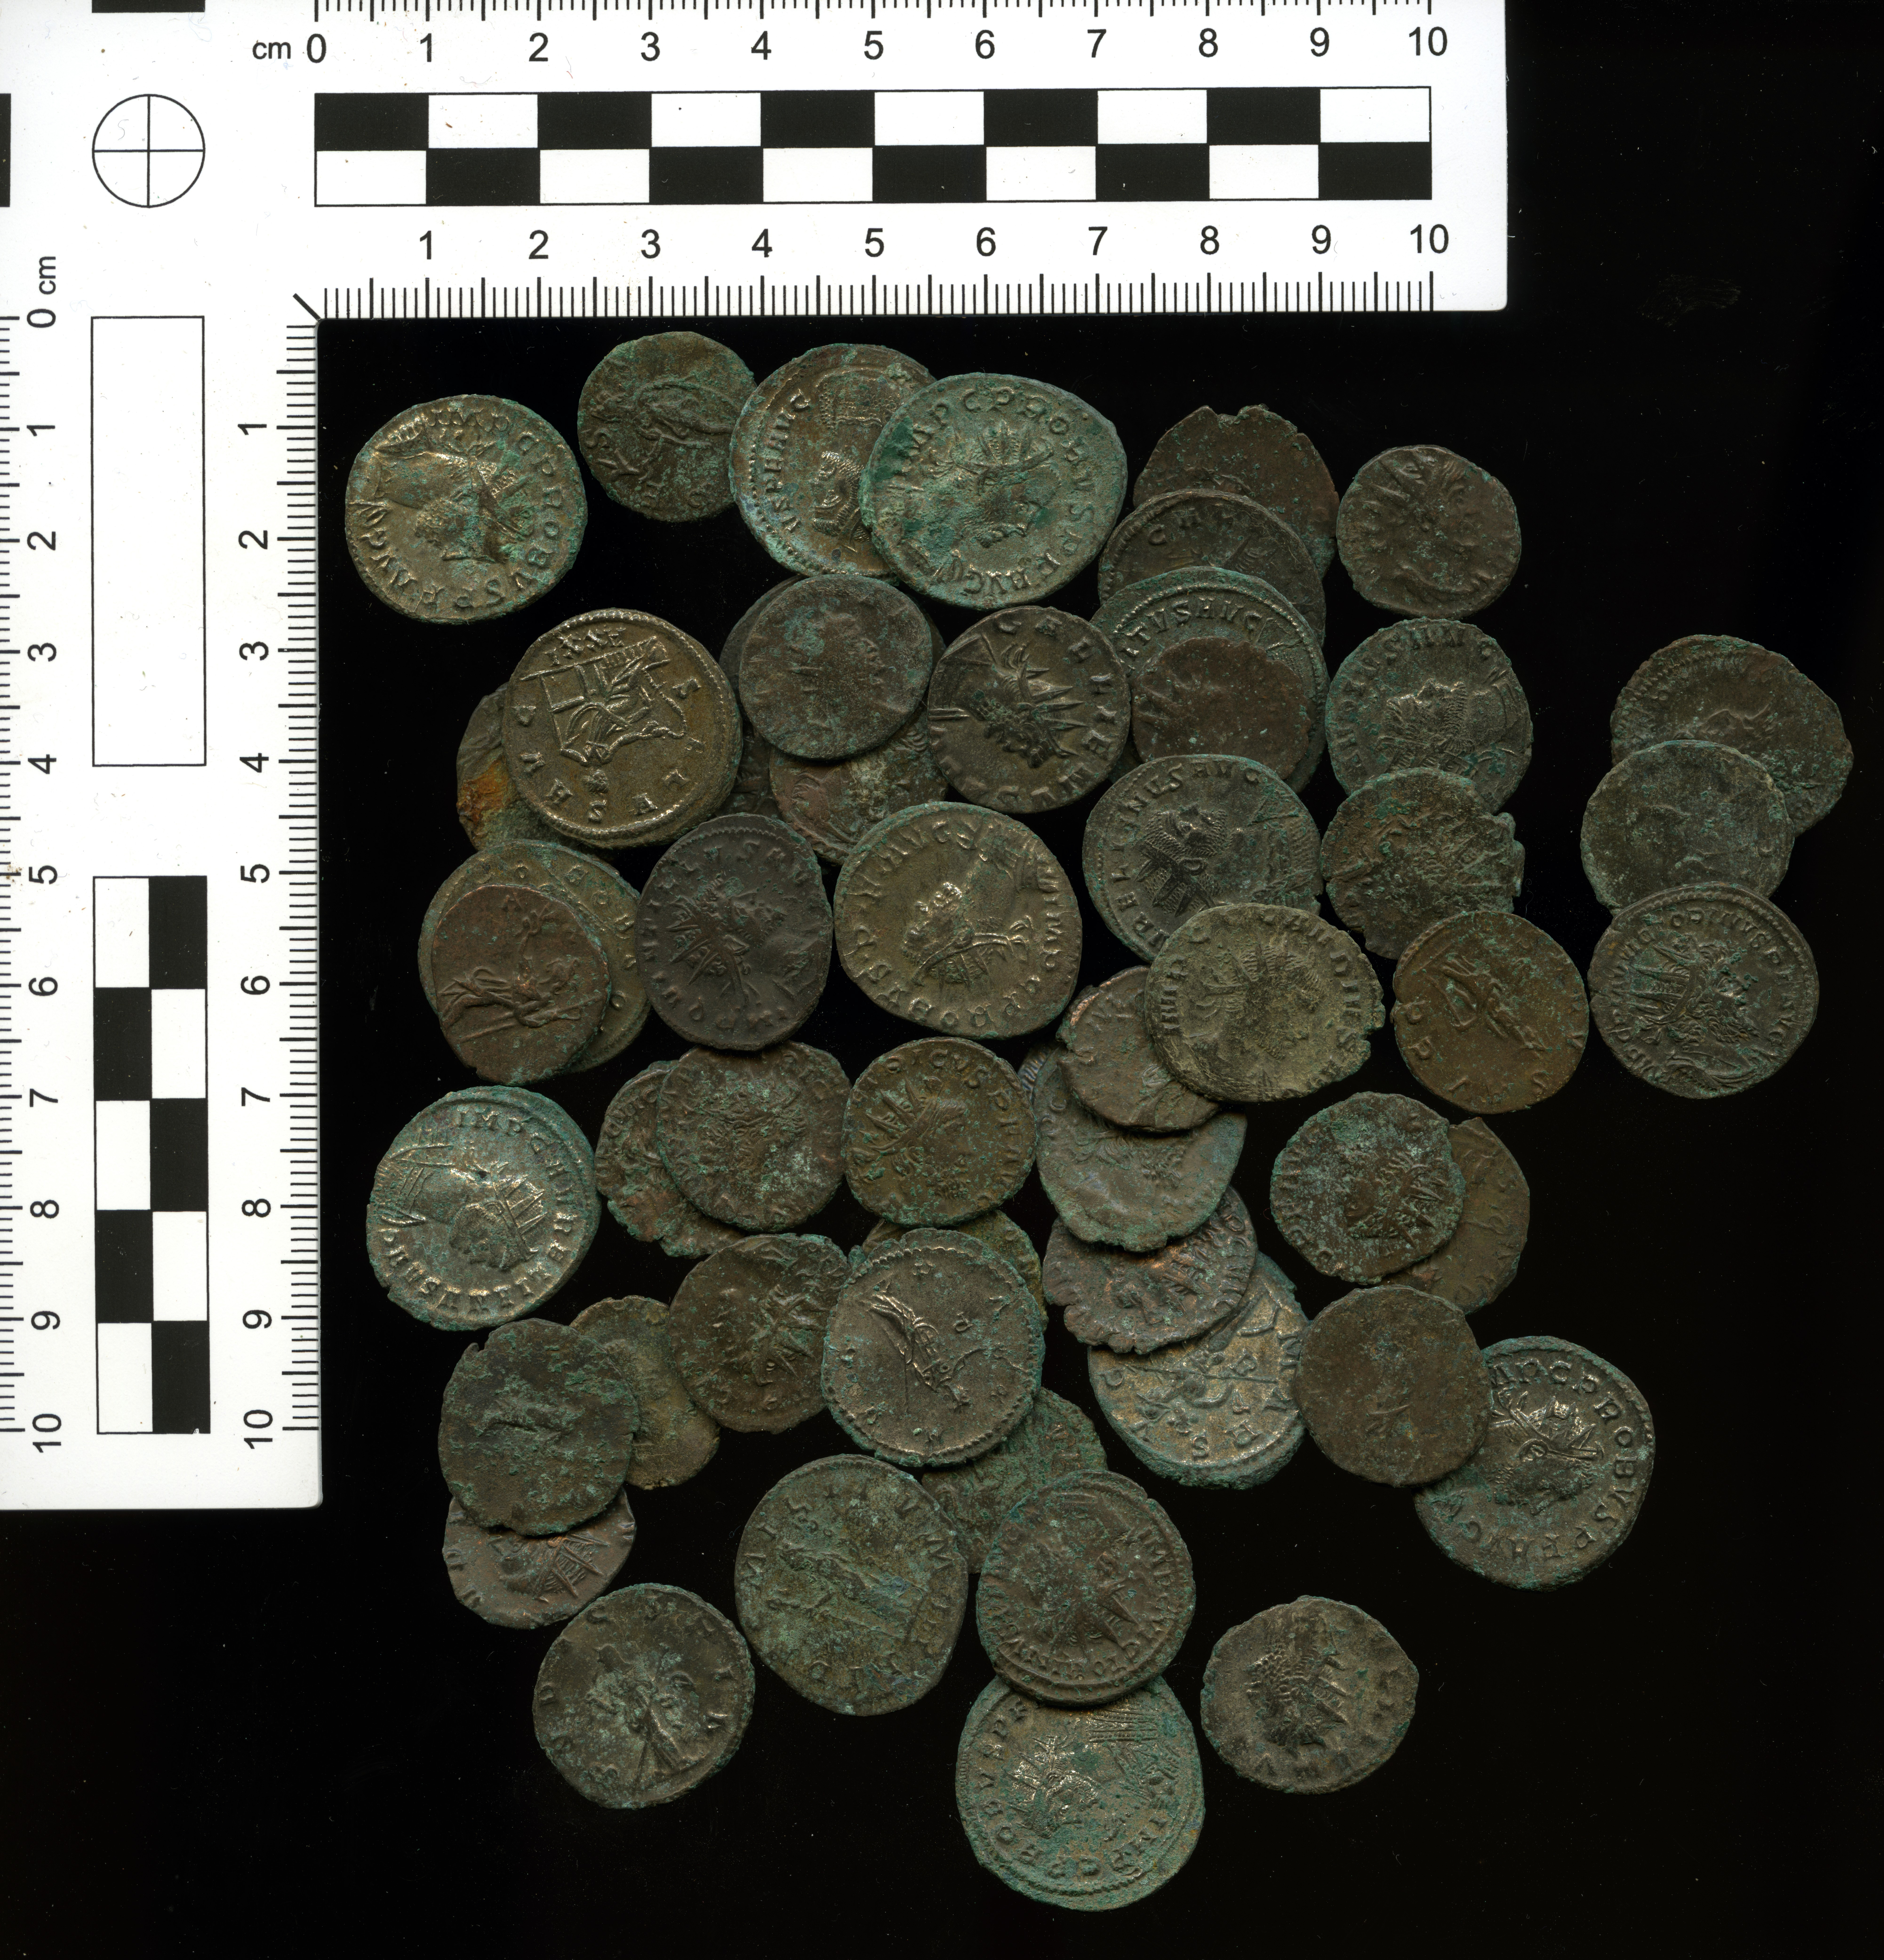 Piddletrenthide hoard coin sample (British Museum)